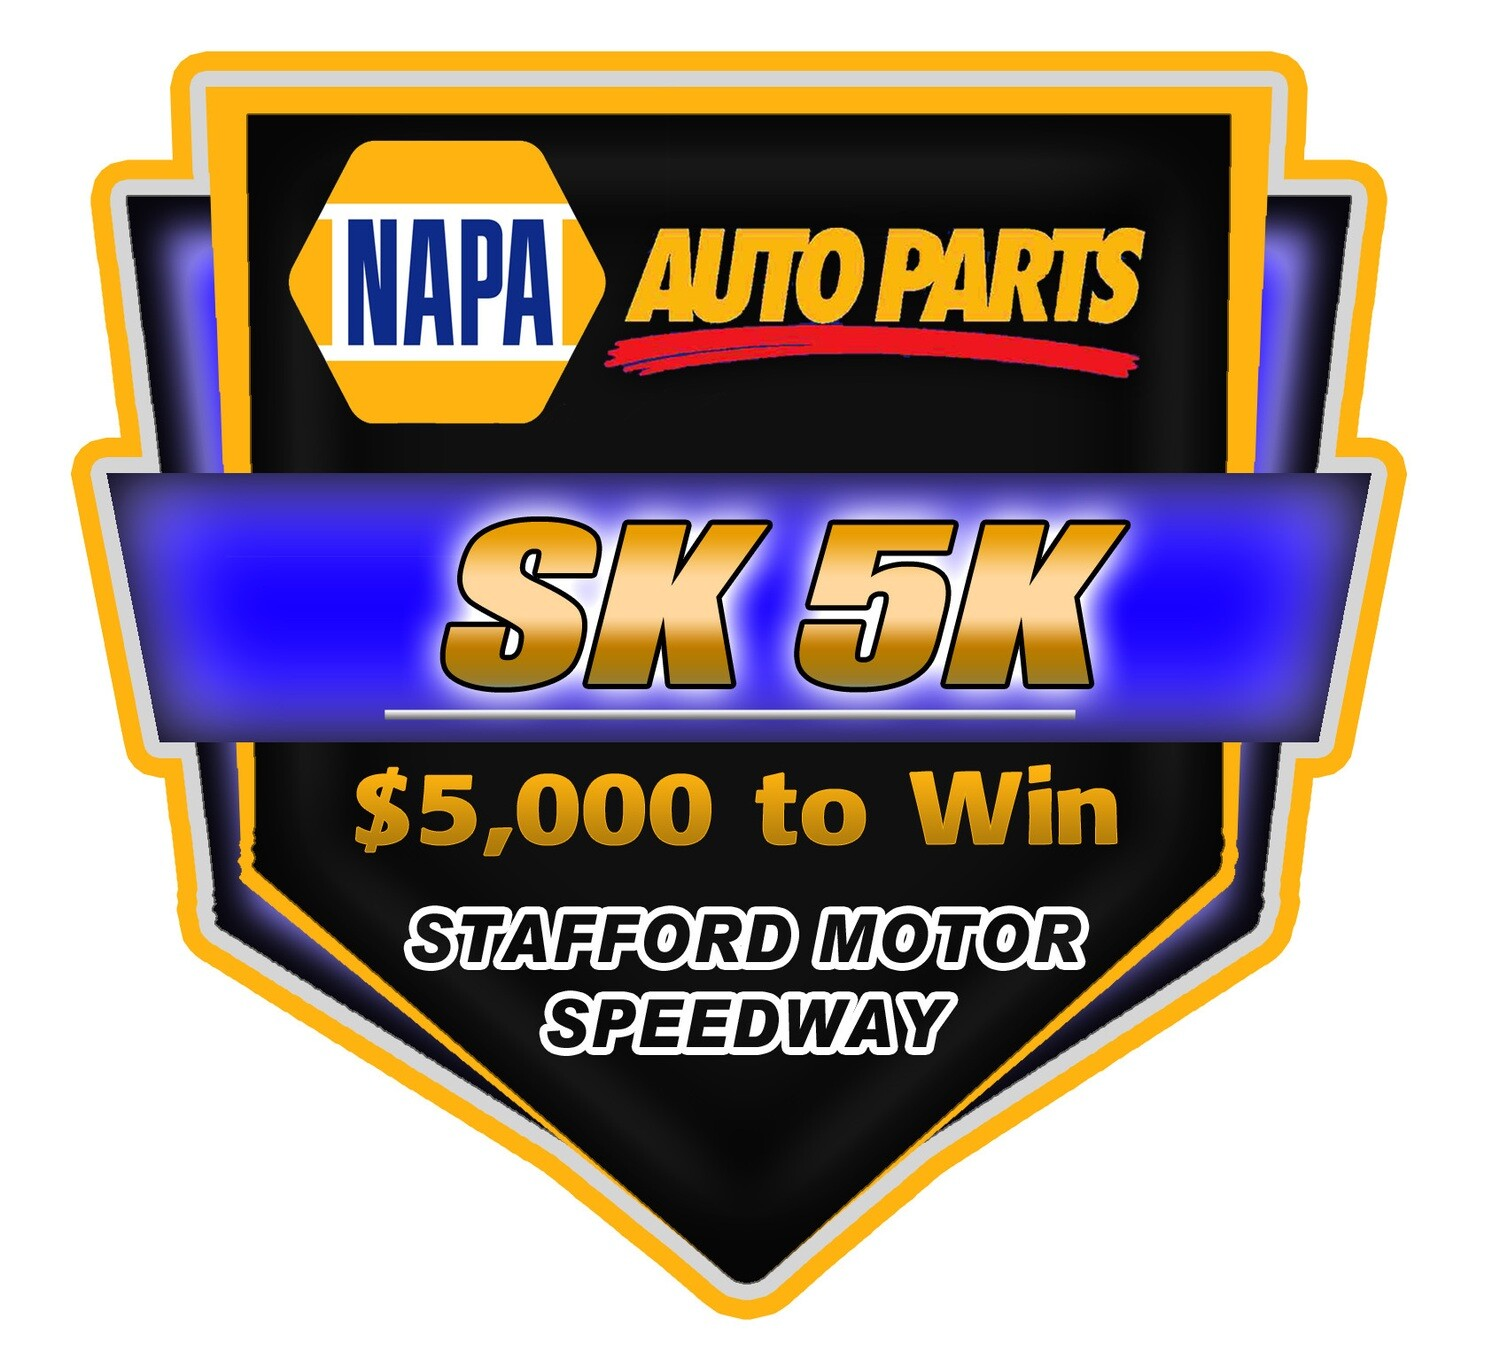 NAPA Auto Parts SK 5K 100  - June 26th